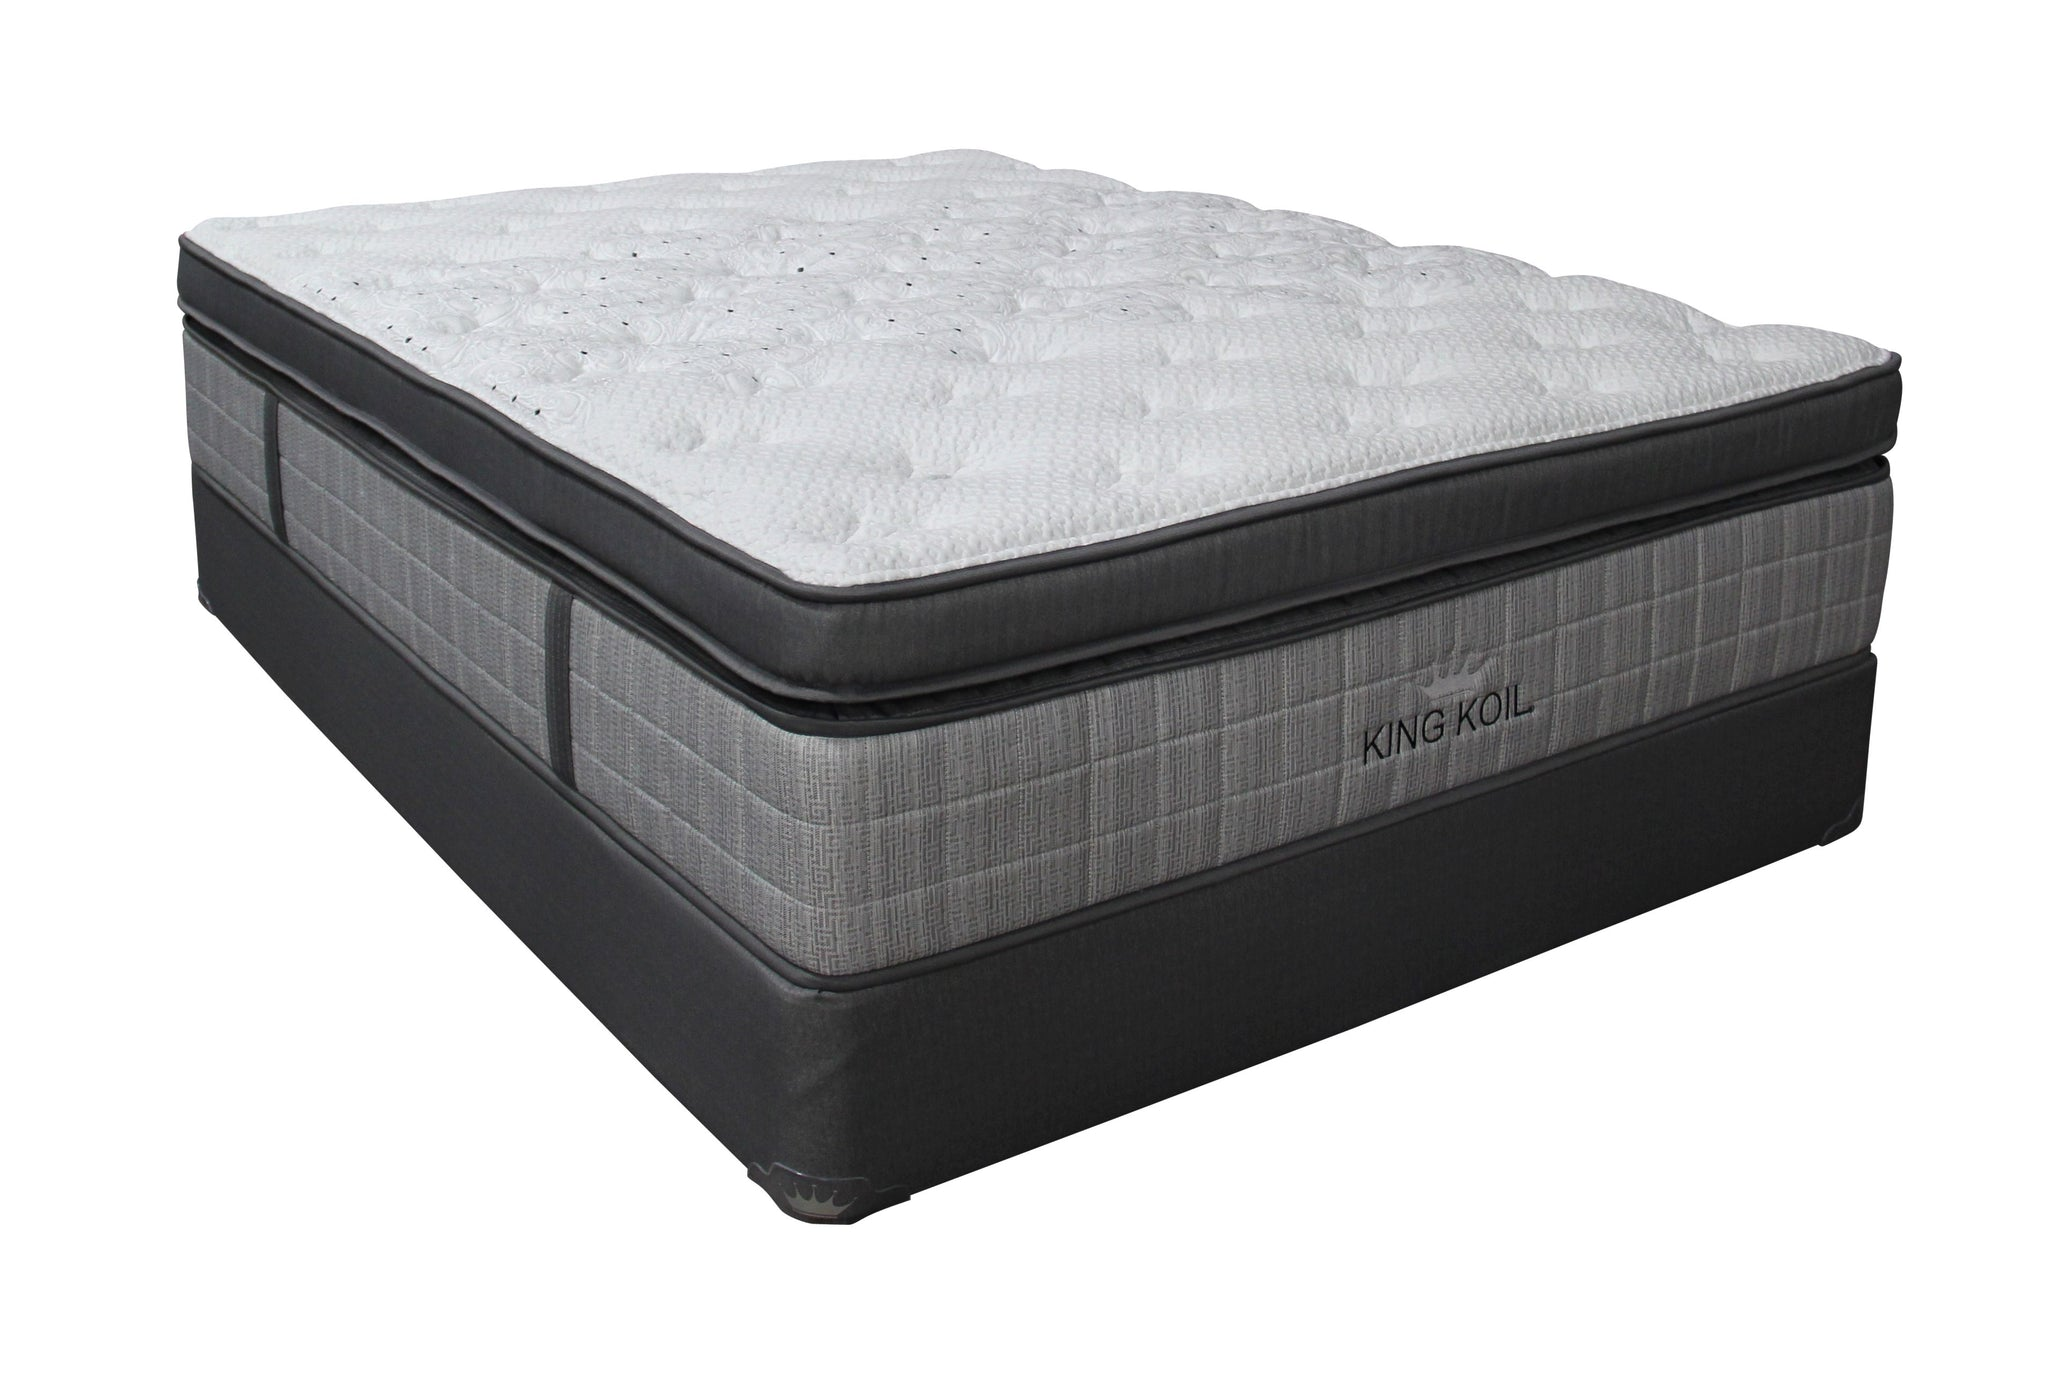 pad of foam size full twin queen amazon and topper bed bath memory pillow top sealy beyond xl mattresses mattress